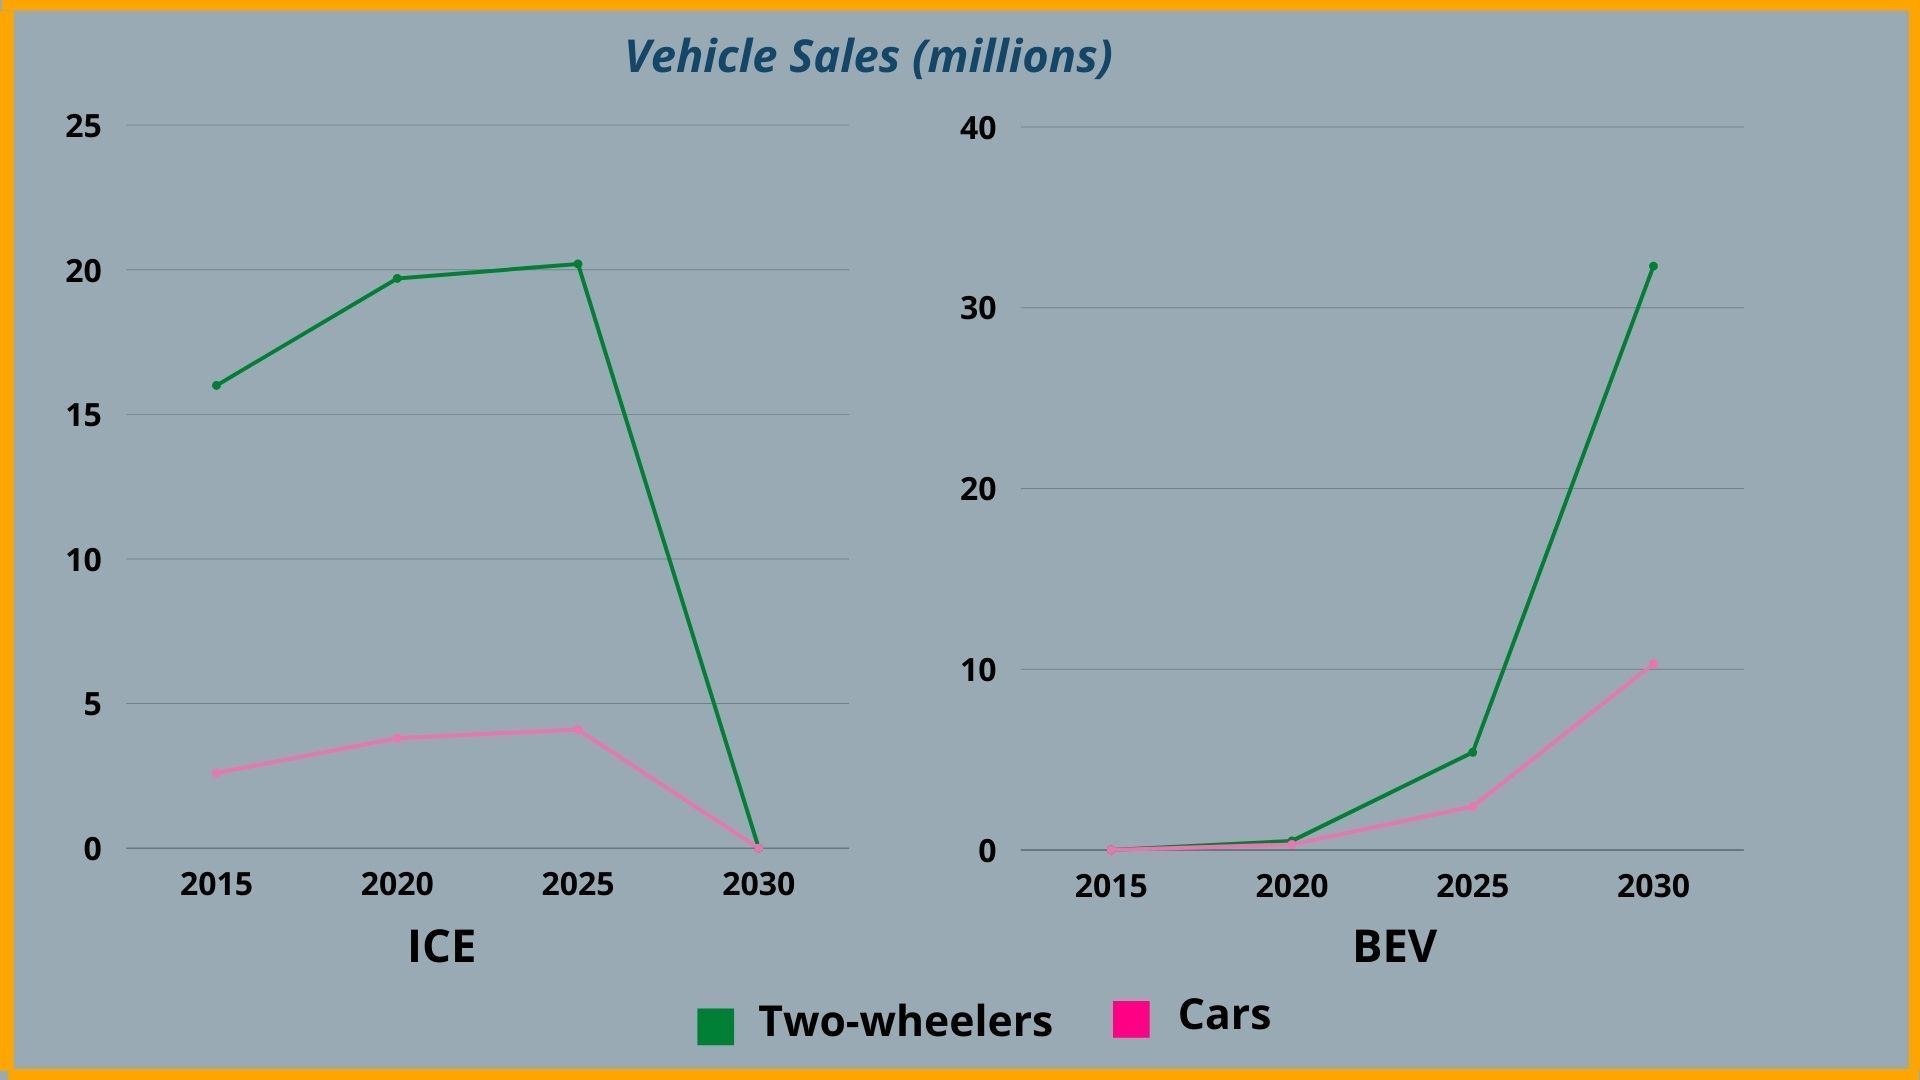 Projected BEV sales (millions) by 2030